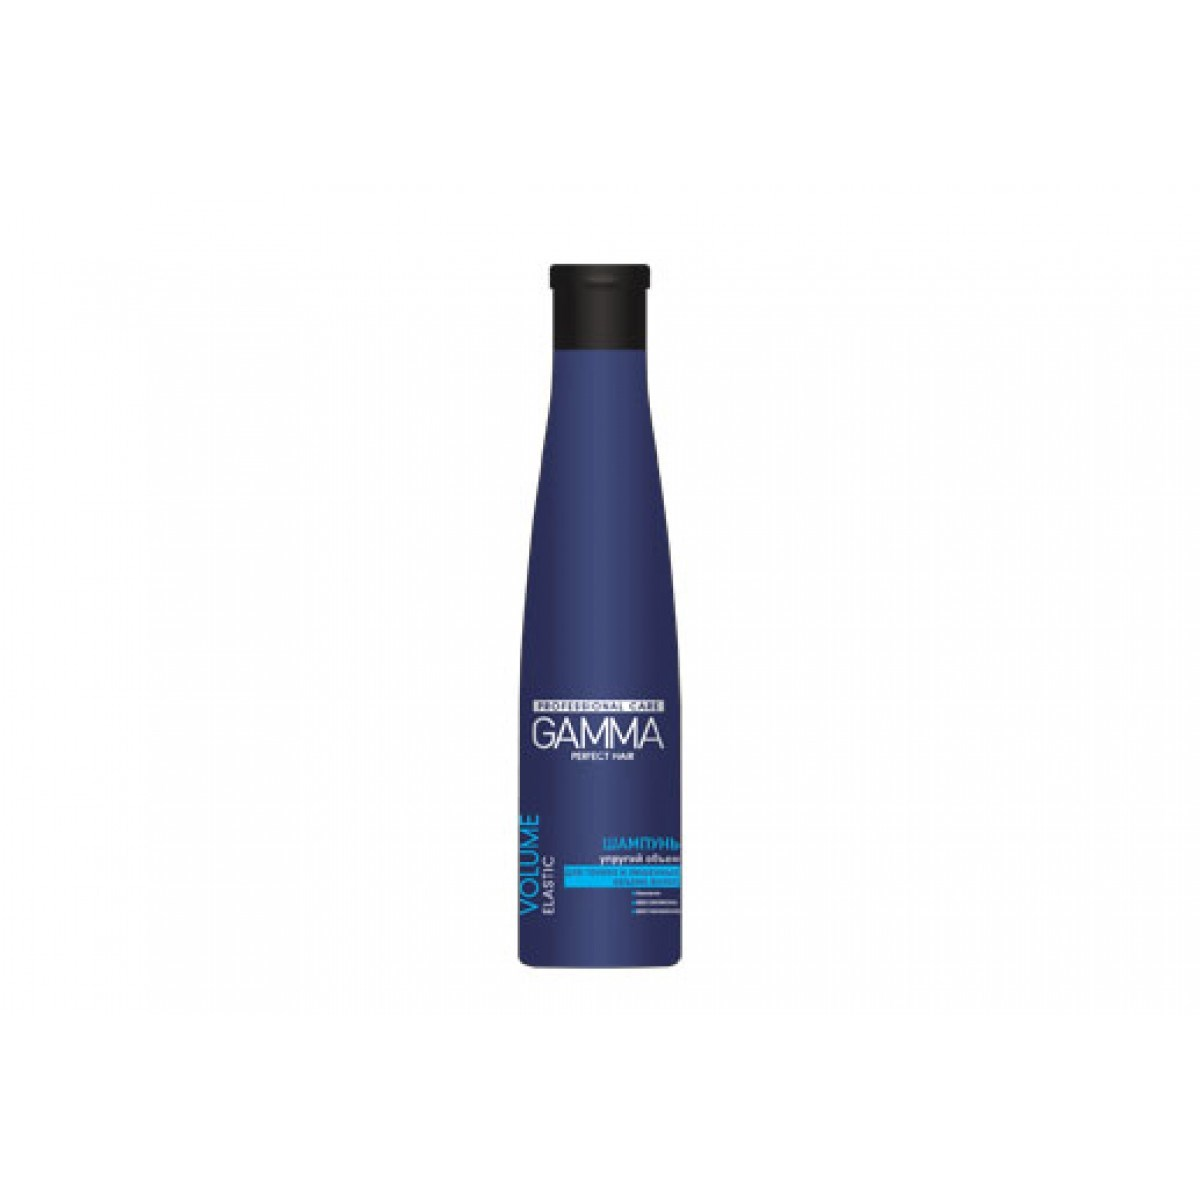 Shampoo for thin and volume-lacking hair GAMMA Perfect Hair image